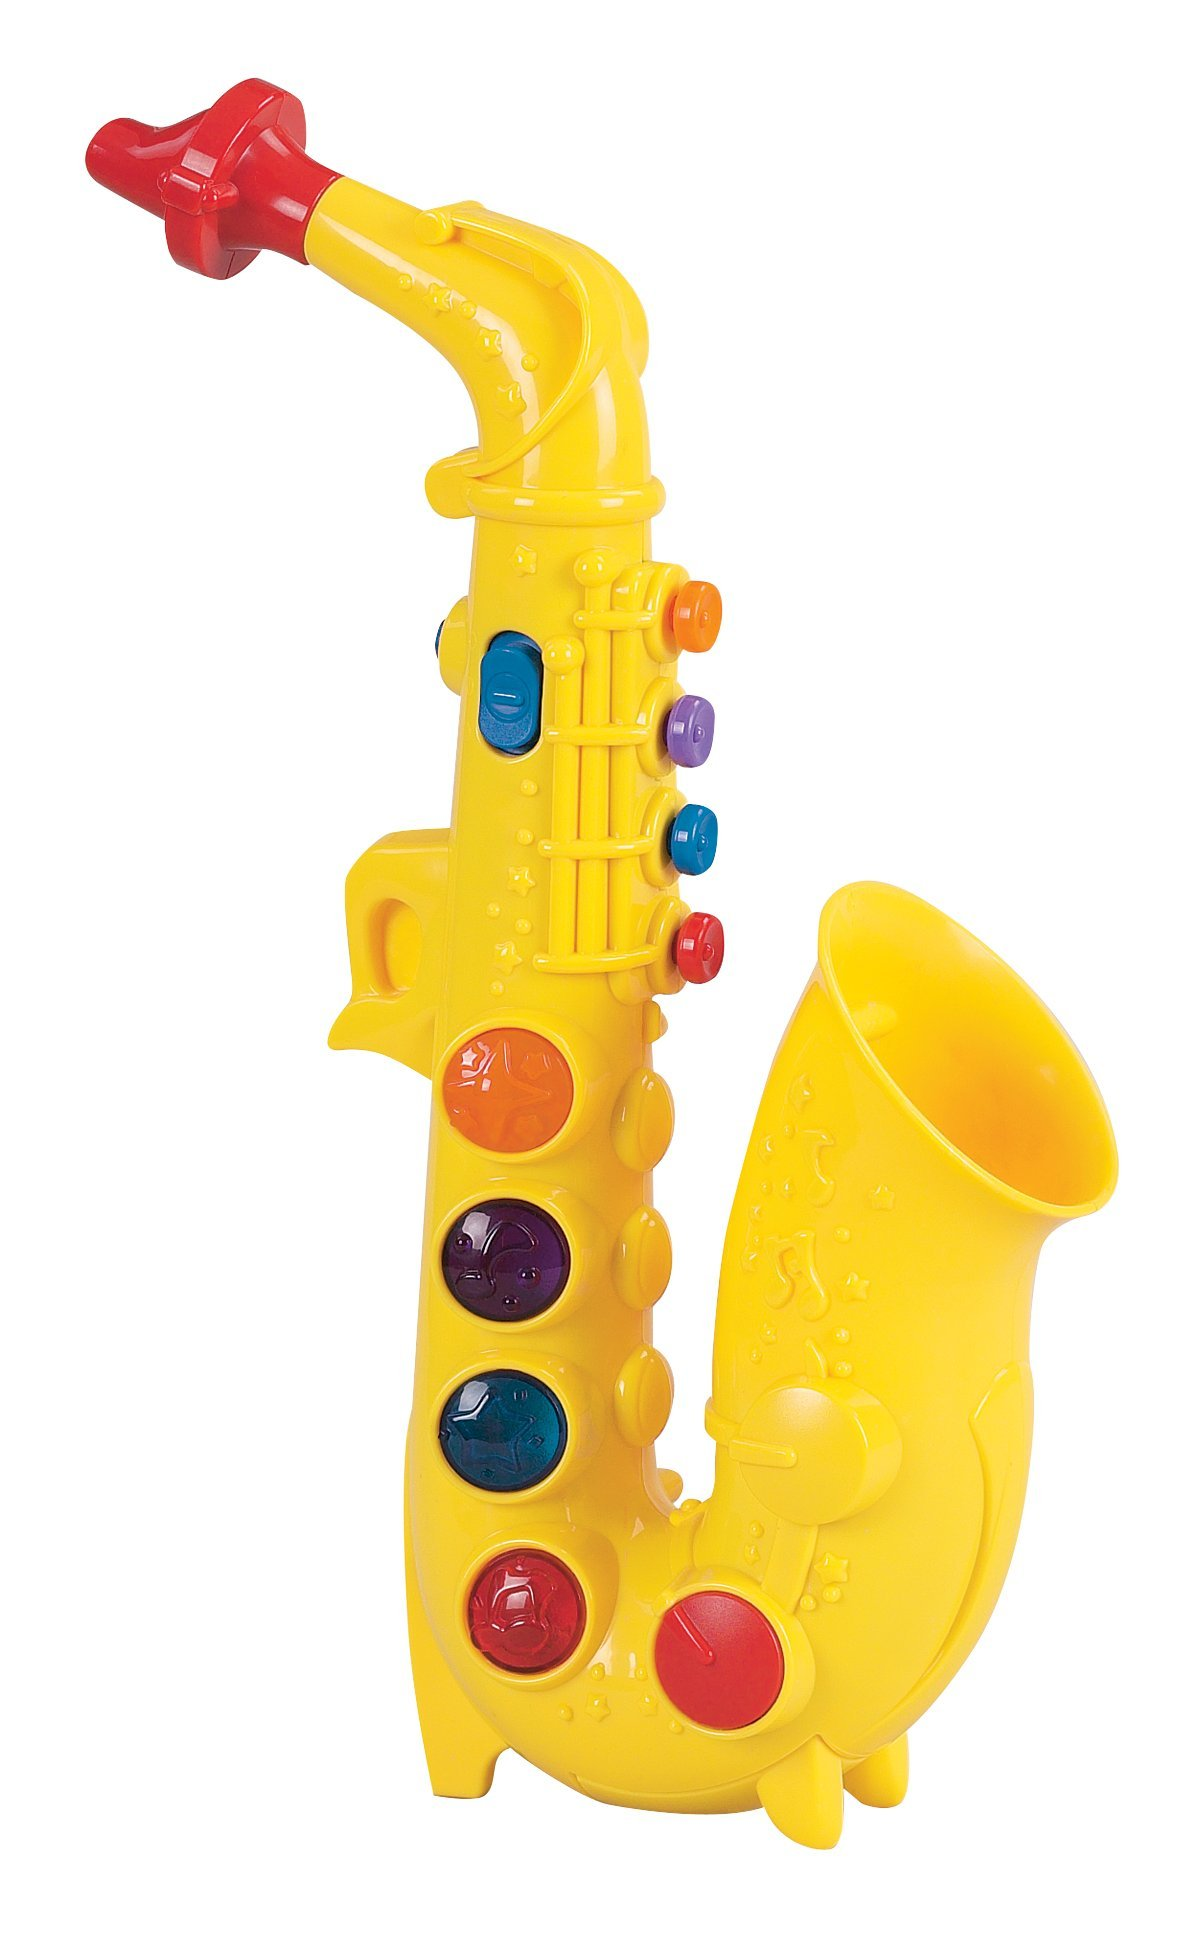 Small World Toys Preschool -Play At Home Saxophone B/O by Small World Toys